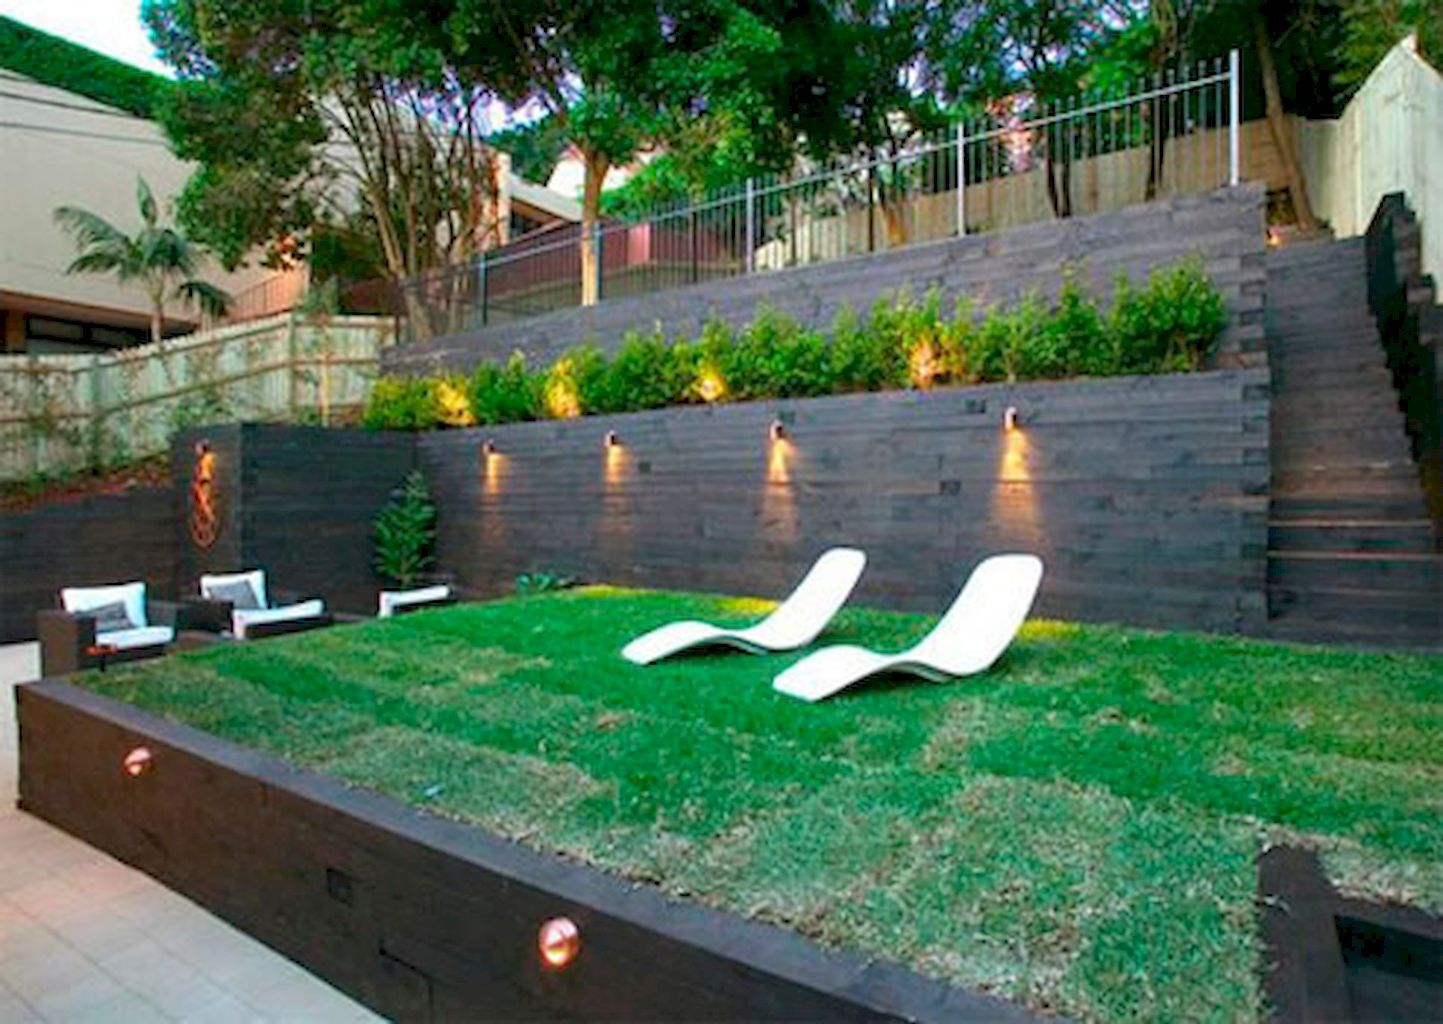 80 Small Backyard Landscaping Ideas on a Budget | Backyard ... on Small Sloped Backyard Ideas On A Budget  id=44369